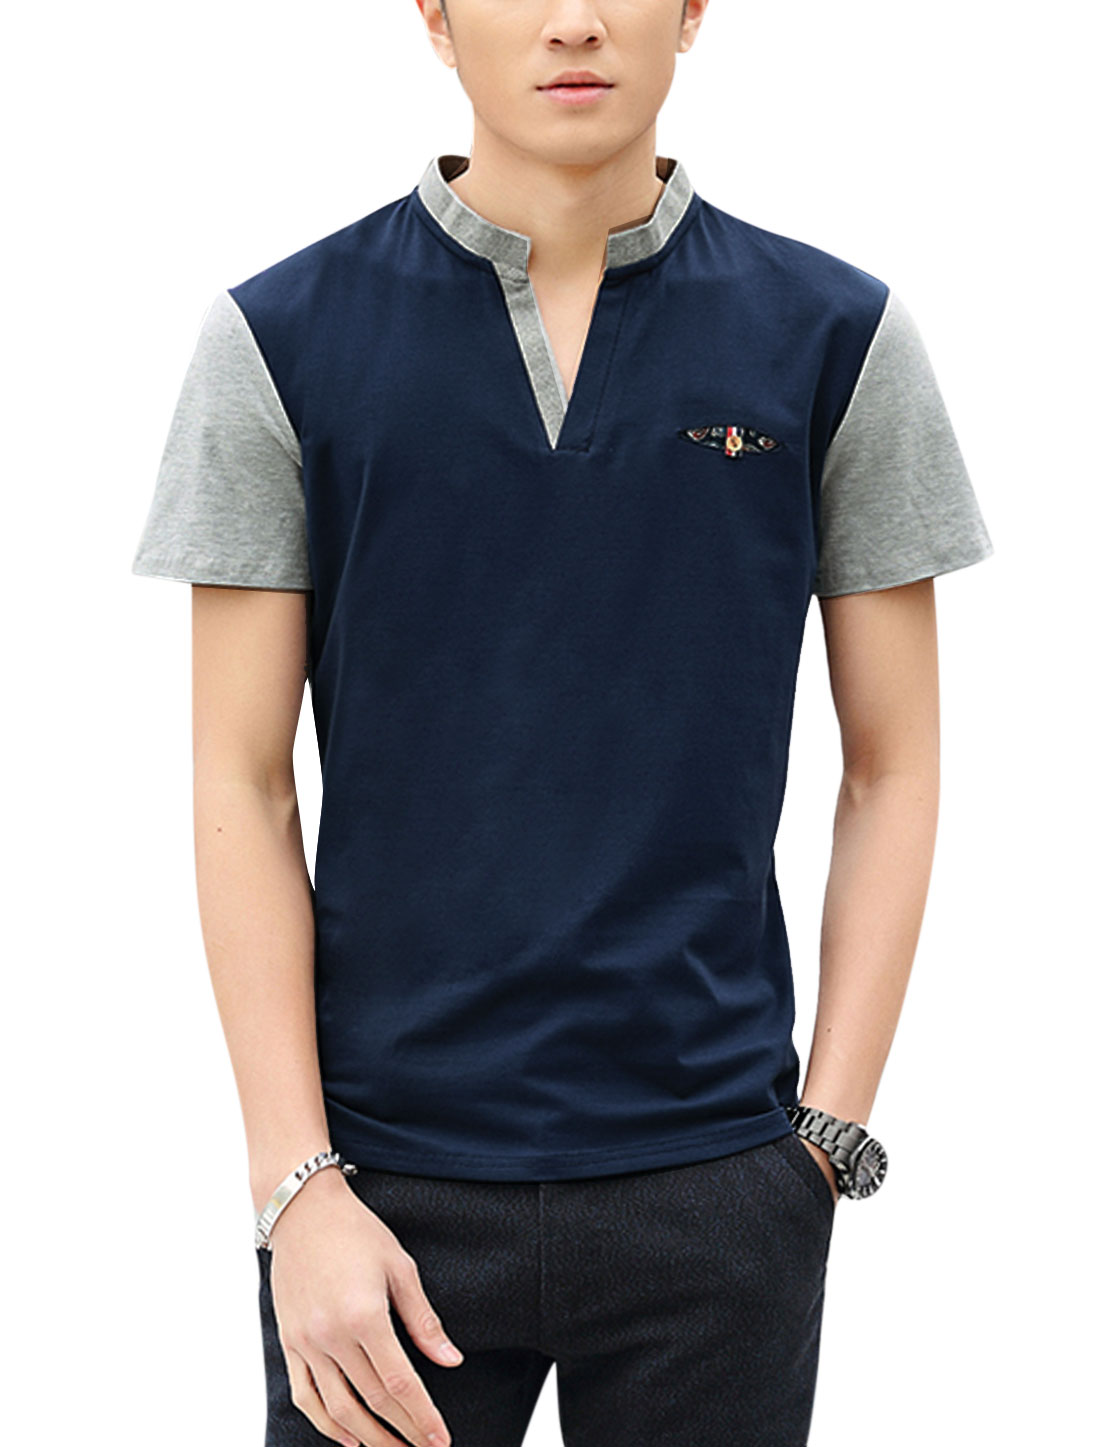 Man Stand Collar Short Sleeves Contrast Color T-Shirts Navy Blue M